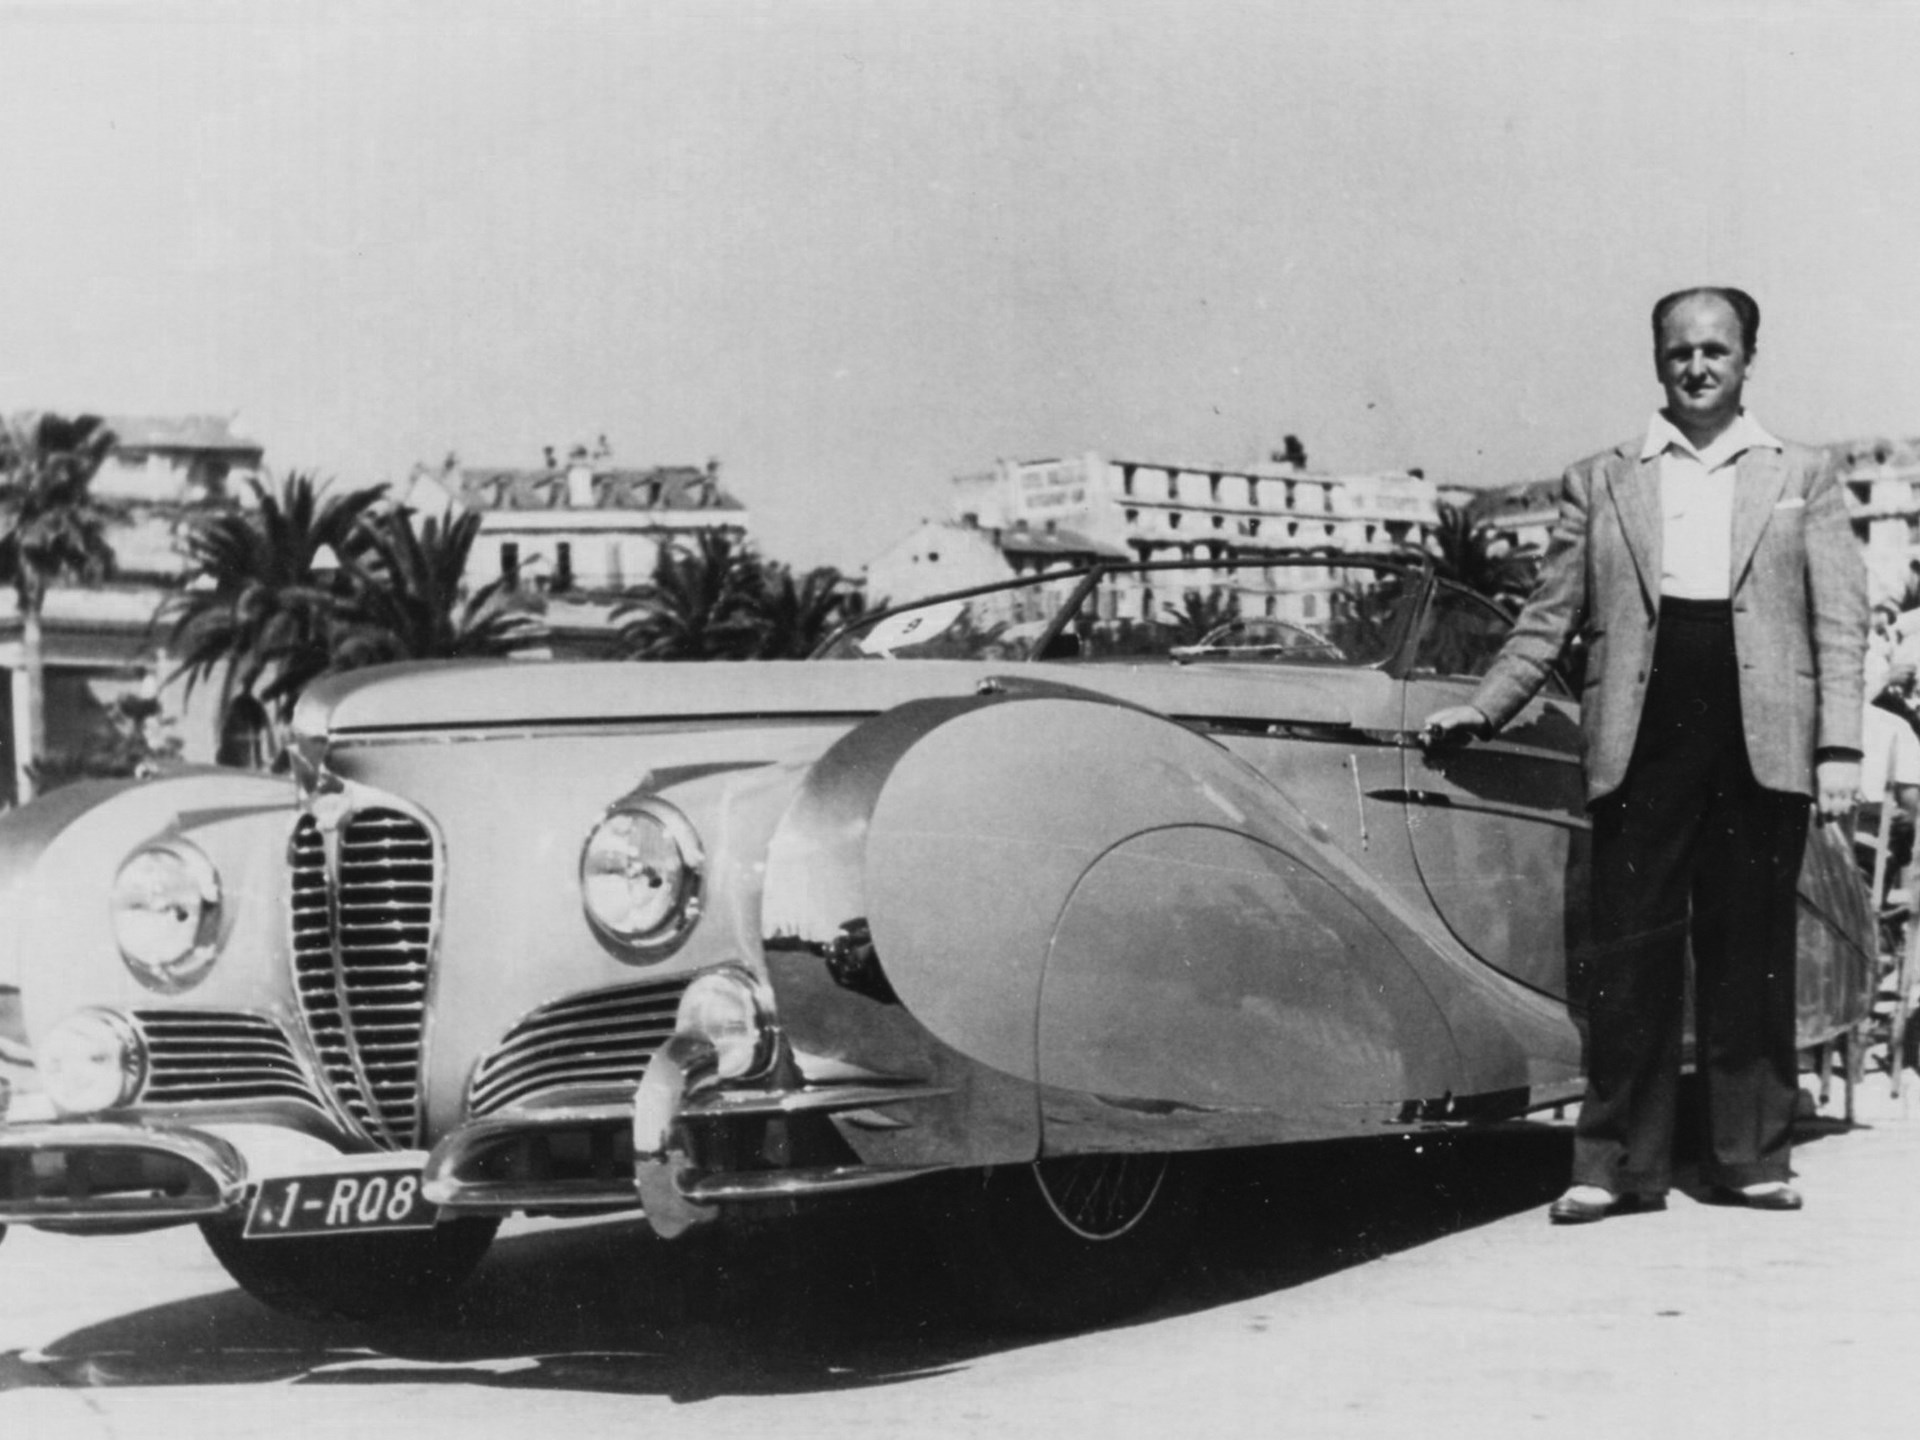 Mr. J Paul as pictured at the Concourse d'Elegance of Cannes on the Croisette, April 19, 1949 where he won the grand prize for two seat convertible sports cars.